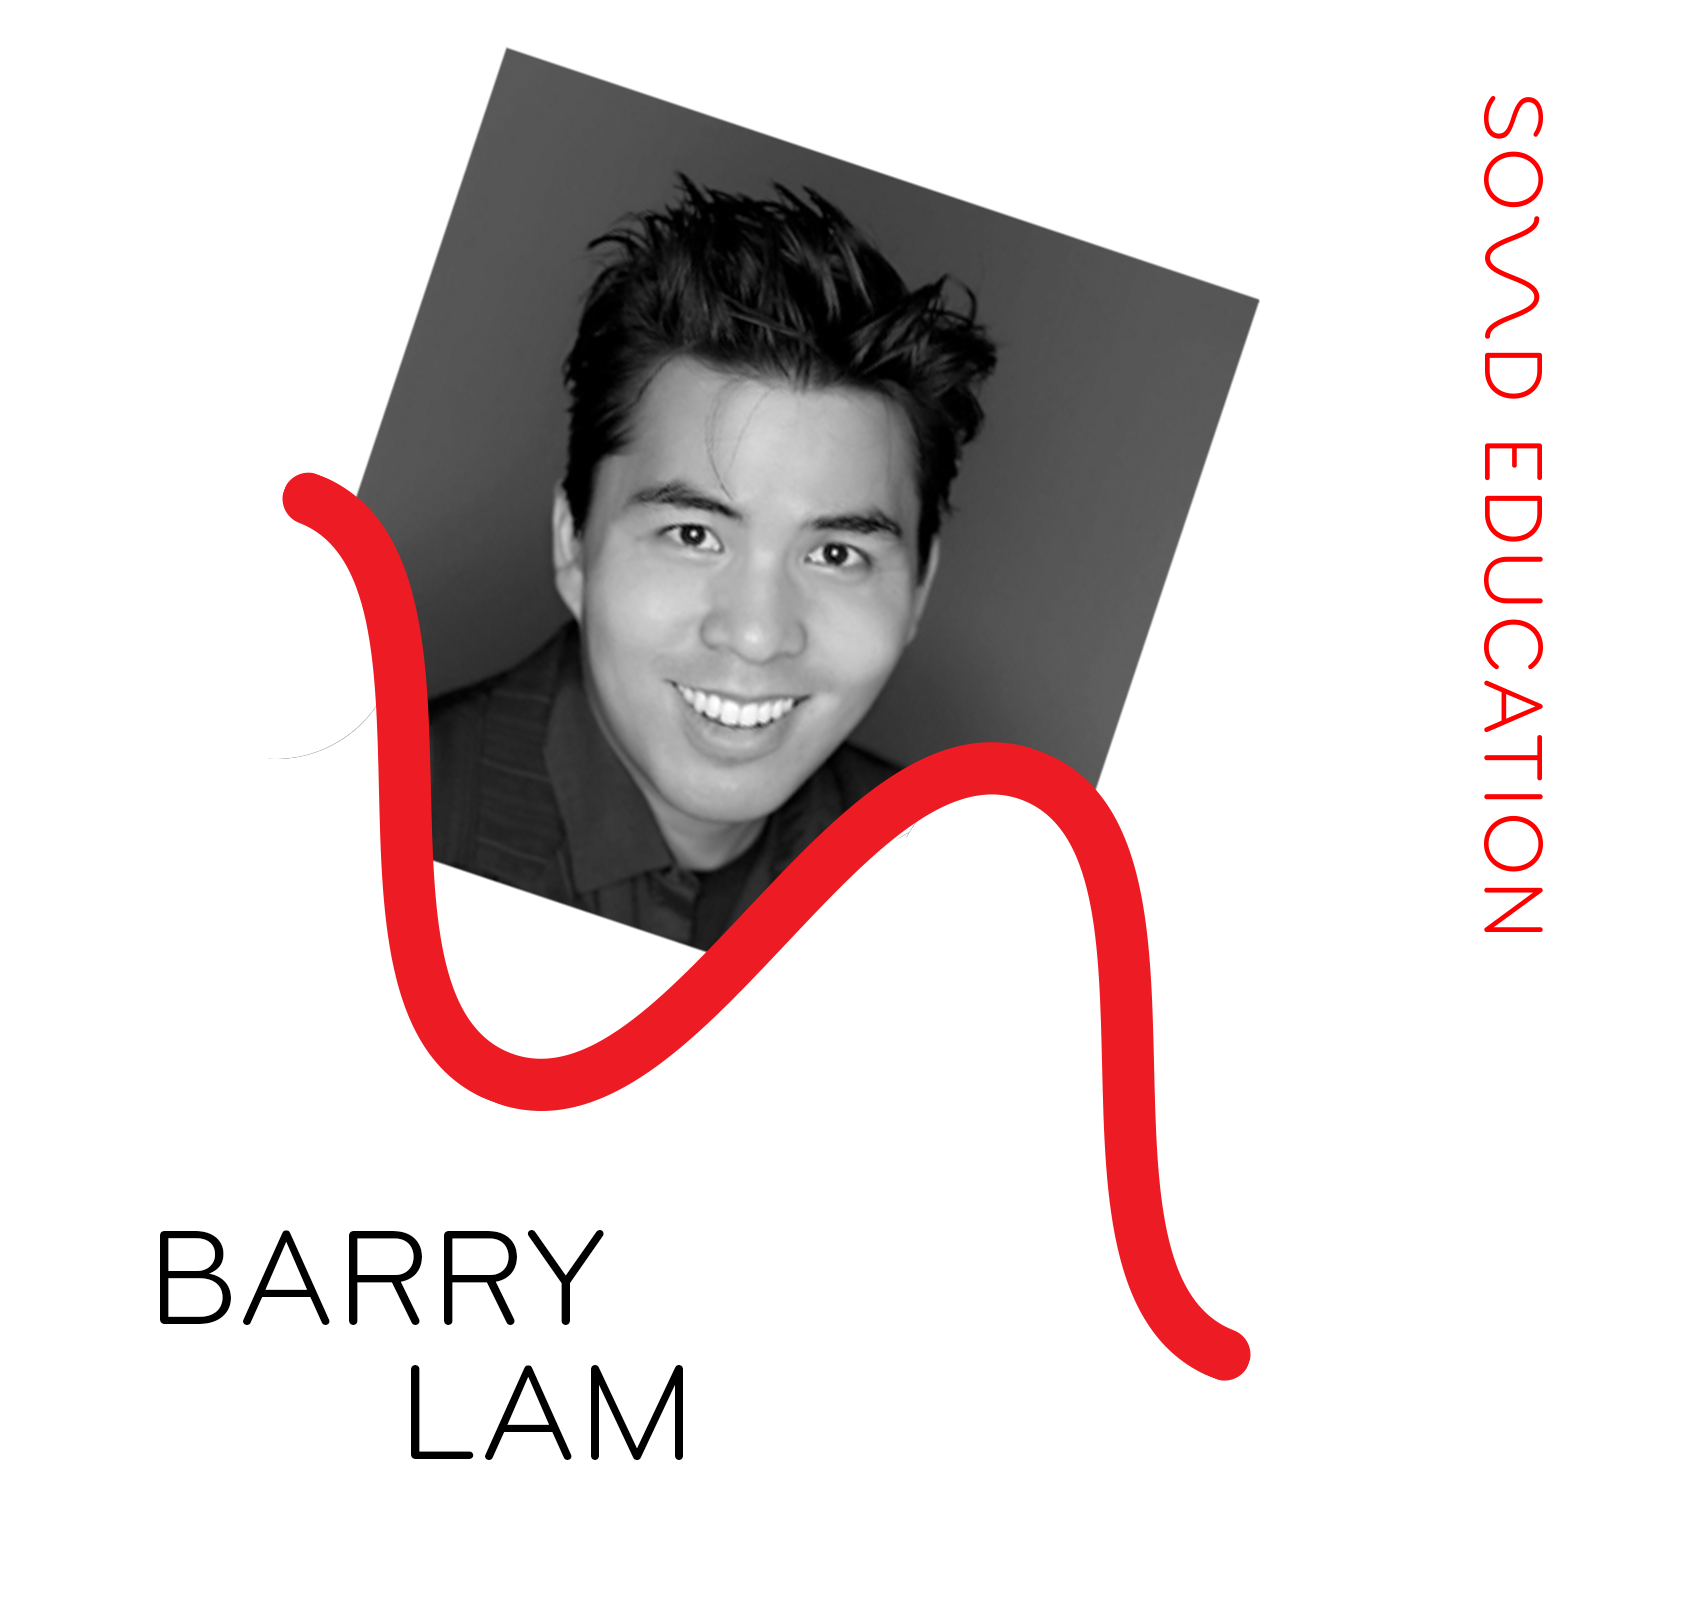 lam_barry.png